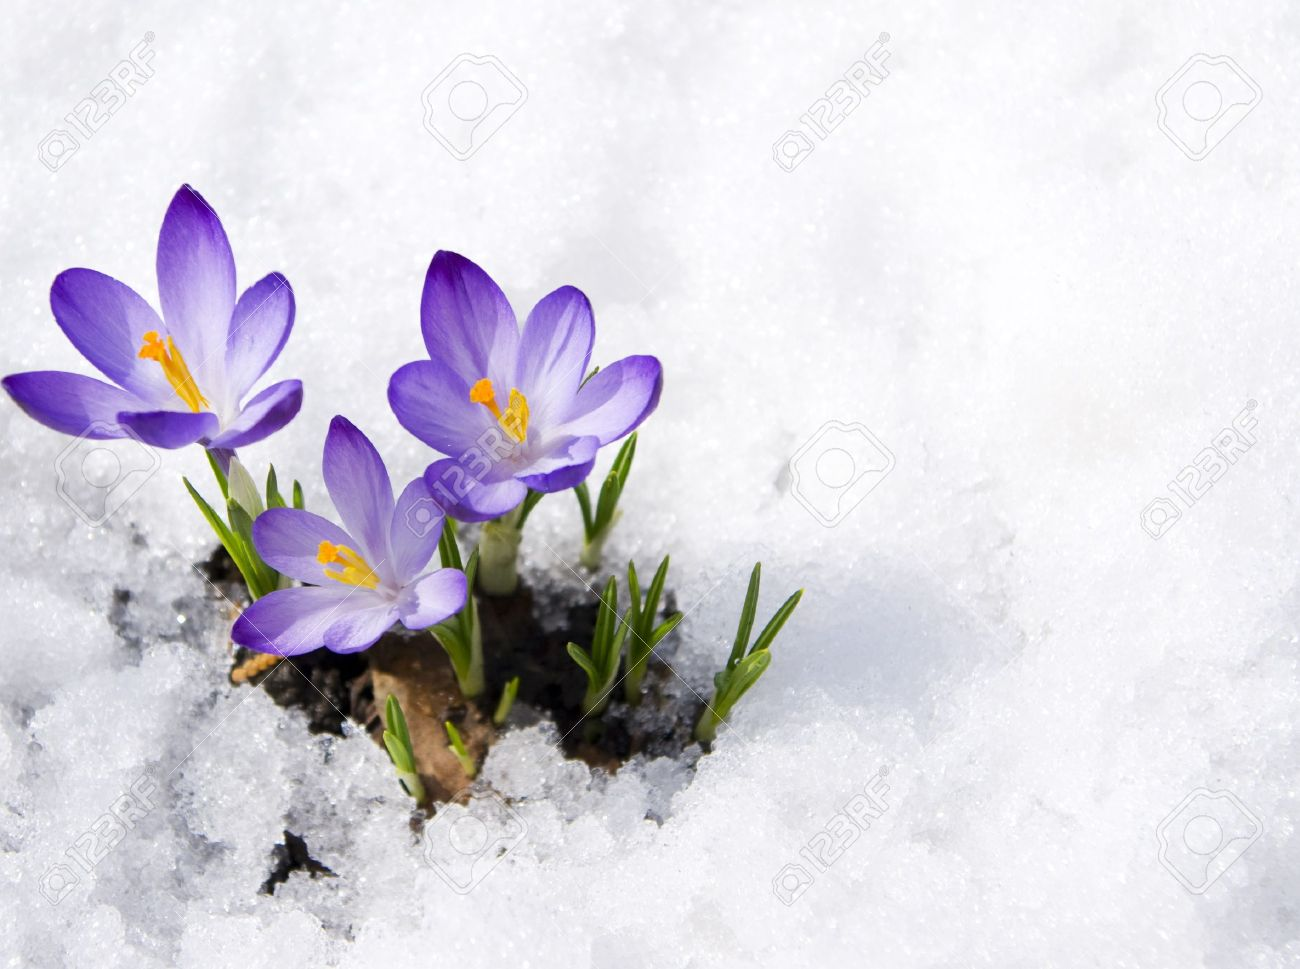 Crocuses In Snow Stock Photo, Picture And Royalty Free Image. Image 15957458.